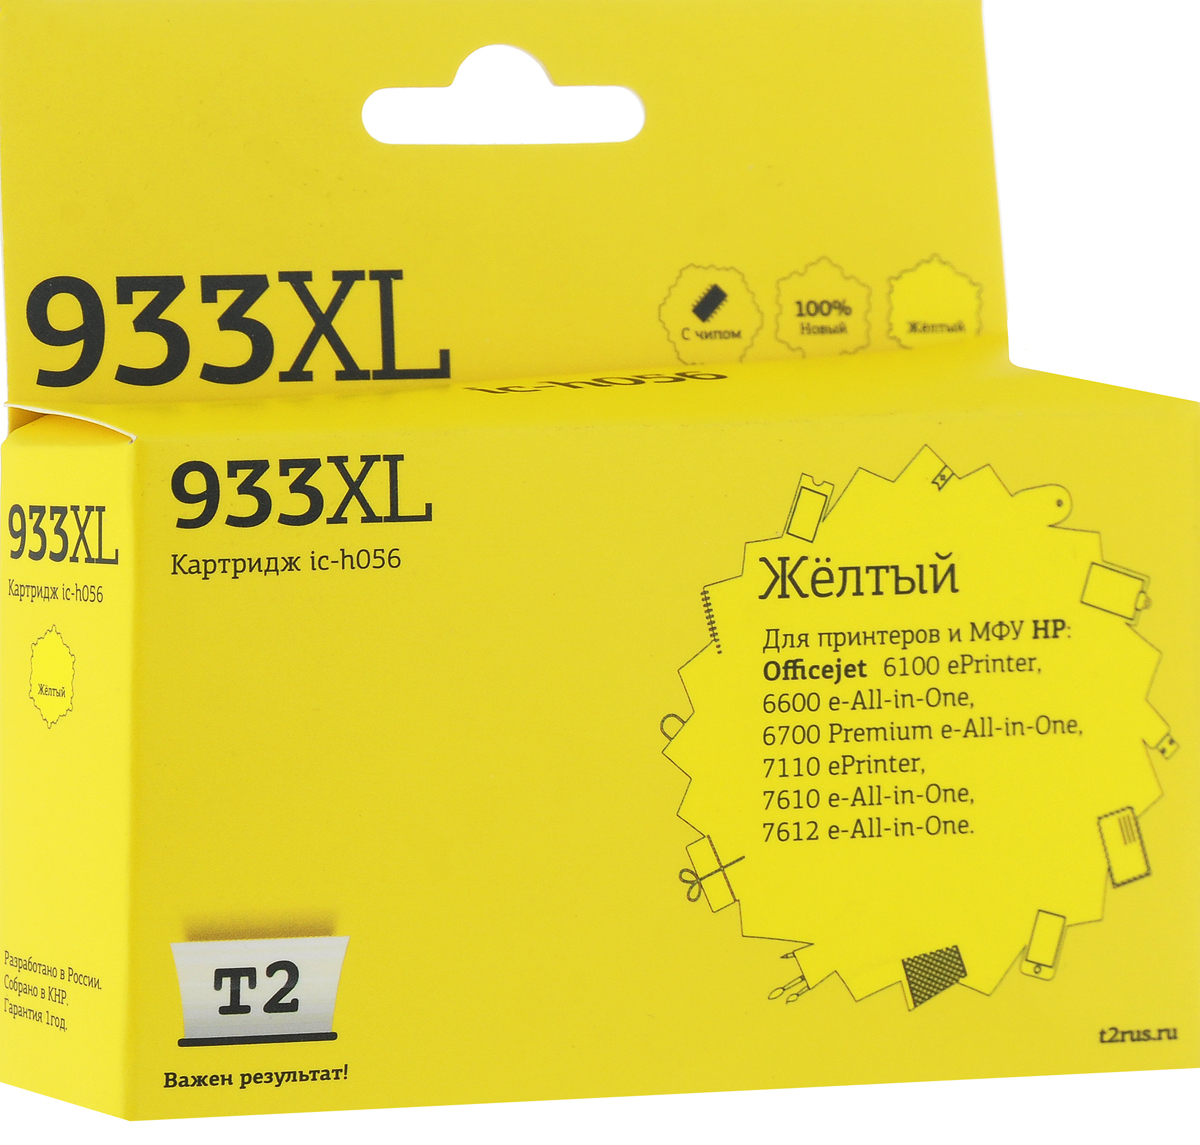 T2 IC-H056 картридж (аналог CN056AE) для HP Officejet 6100/6600/6700/7110/7610, Yellow картридж t2 ic h056 933xl аналог cn056ae желтый